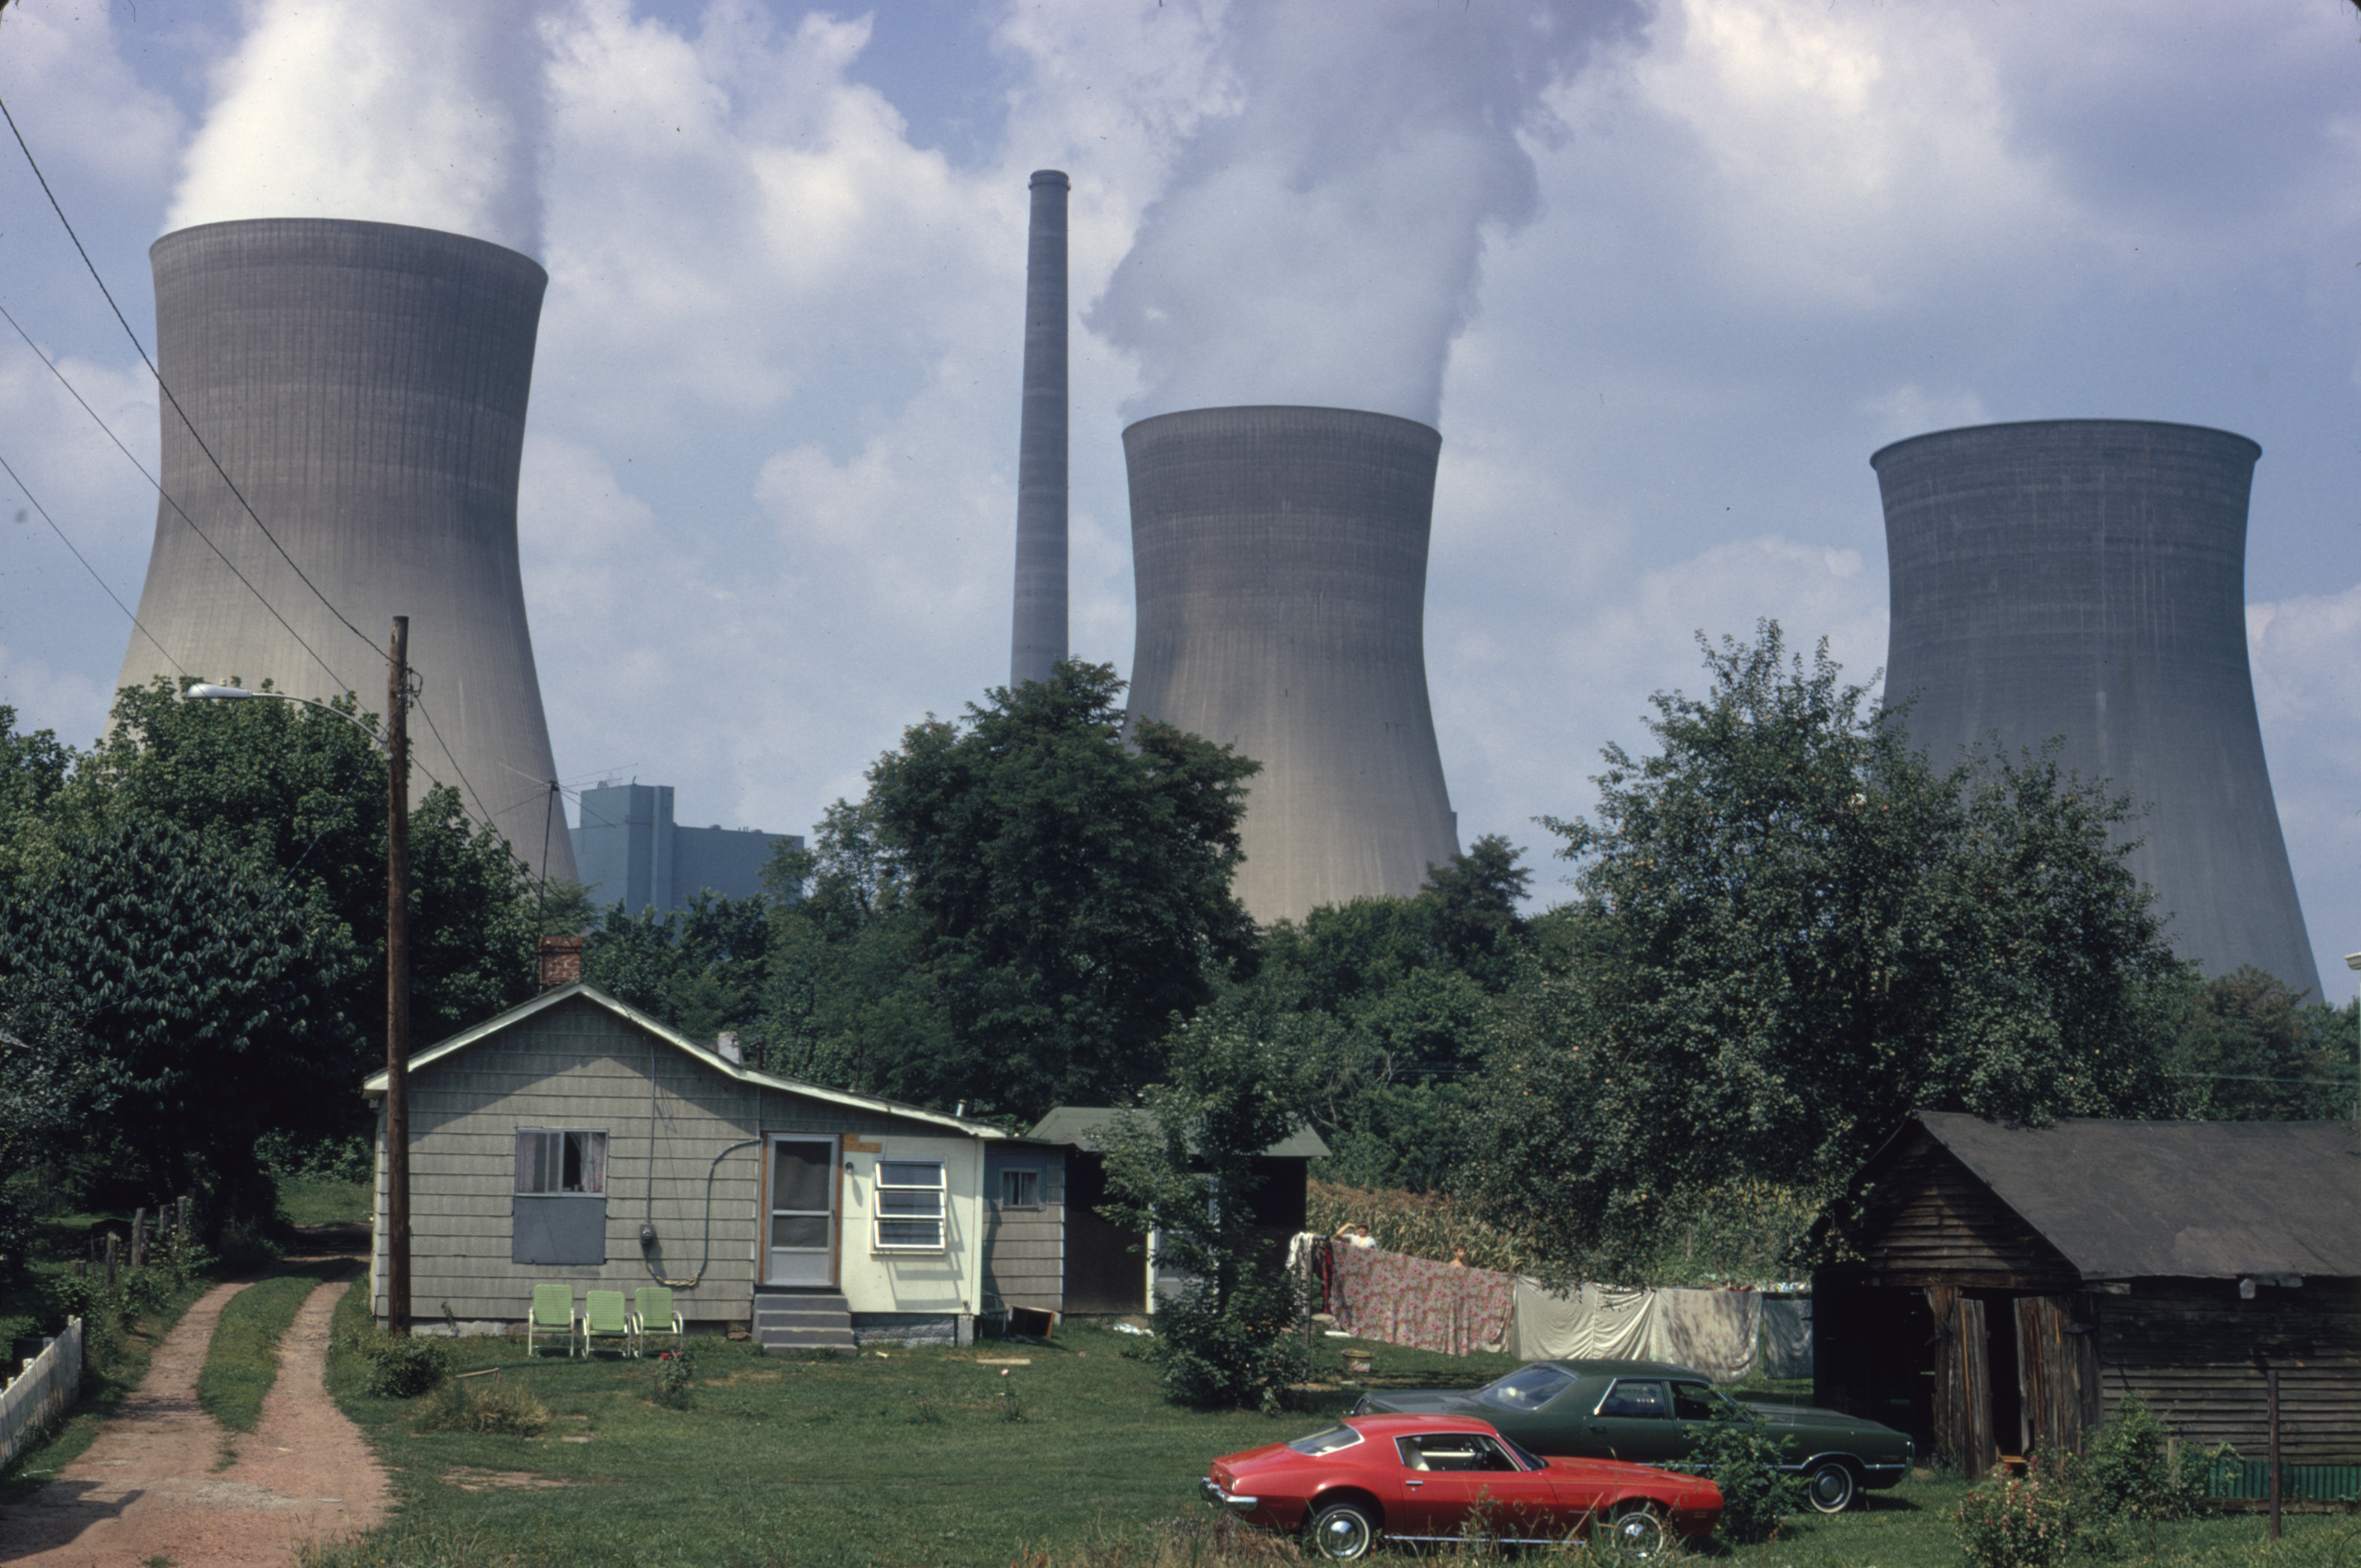 Water Cooling Towers of the John Amos Power Plant Loom over Poca